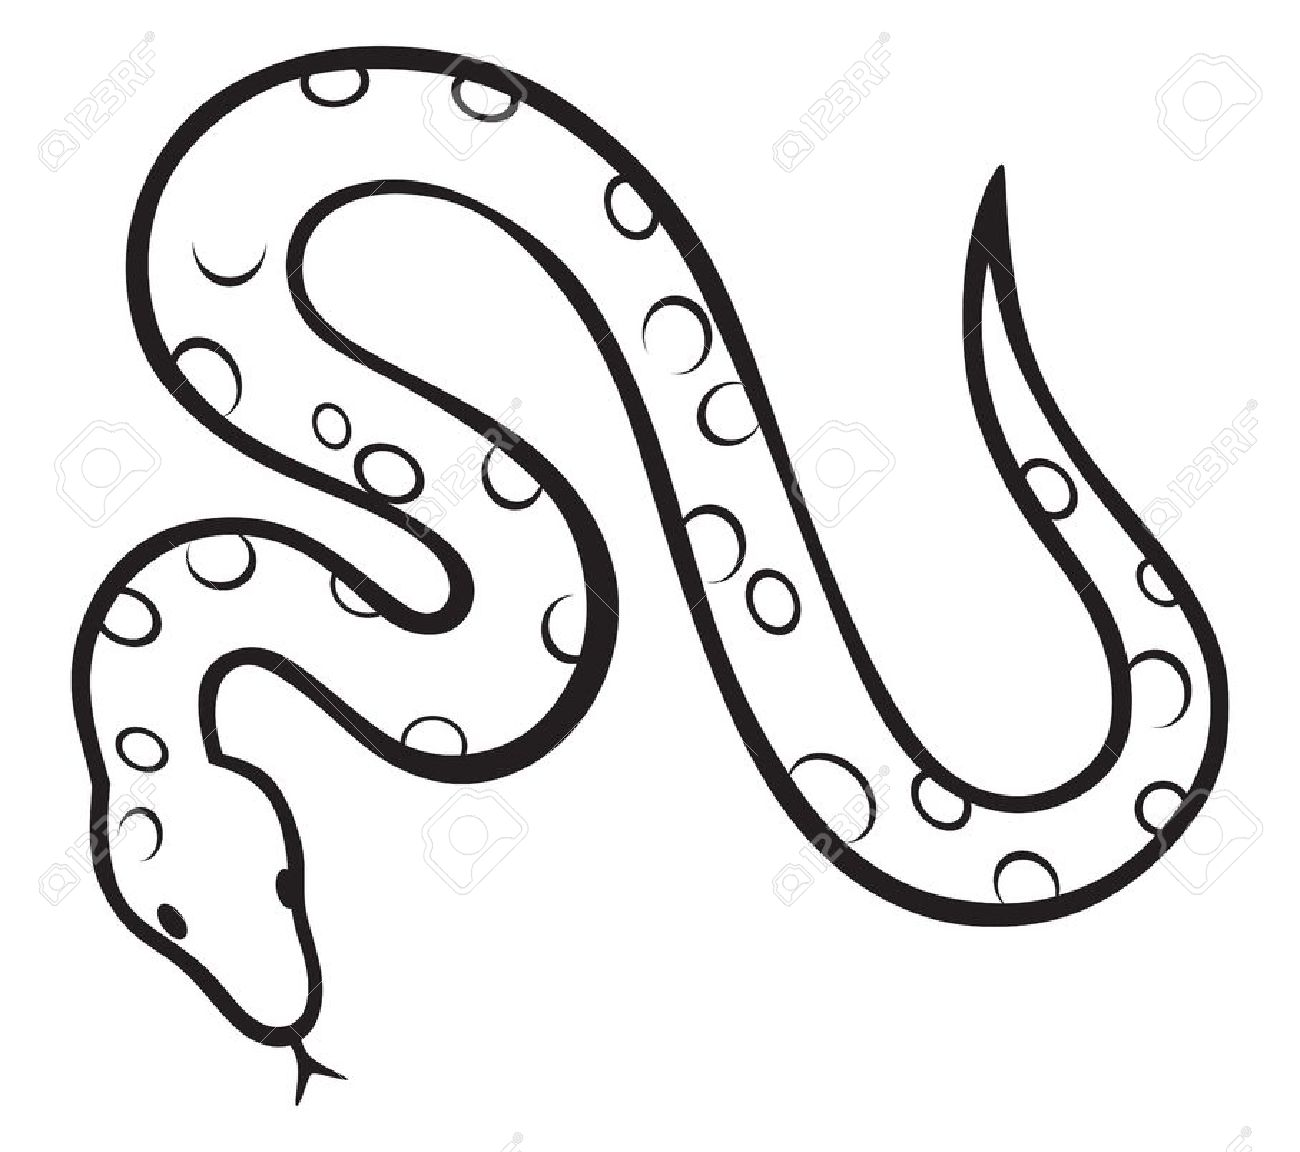 Free Snake Cliparts Black, Download Free Clip Art, Free Clip.